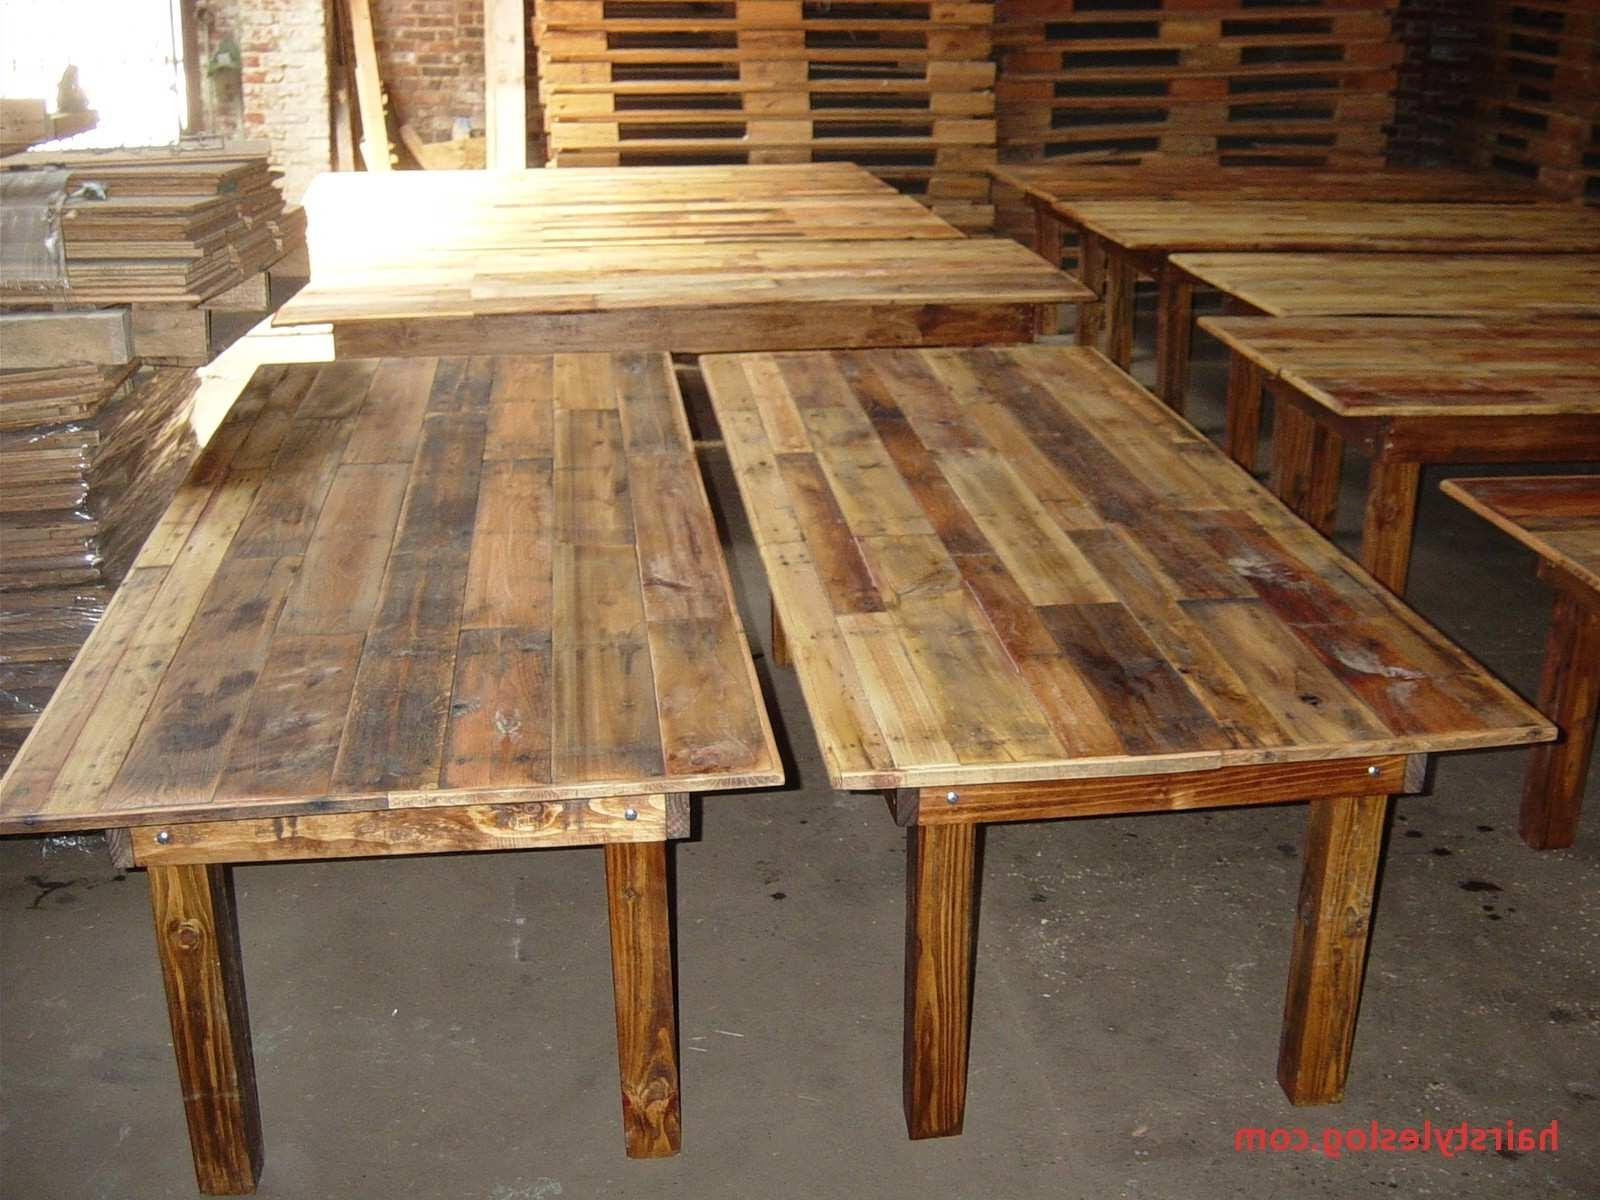 Unusual Dining Tables For Sale Inside 2018 Neutral Rustic Round Kitchen Tables For Sale Regarding Aspiration (View 19 of 25)